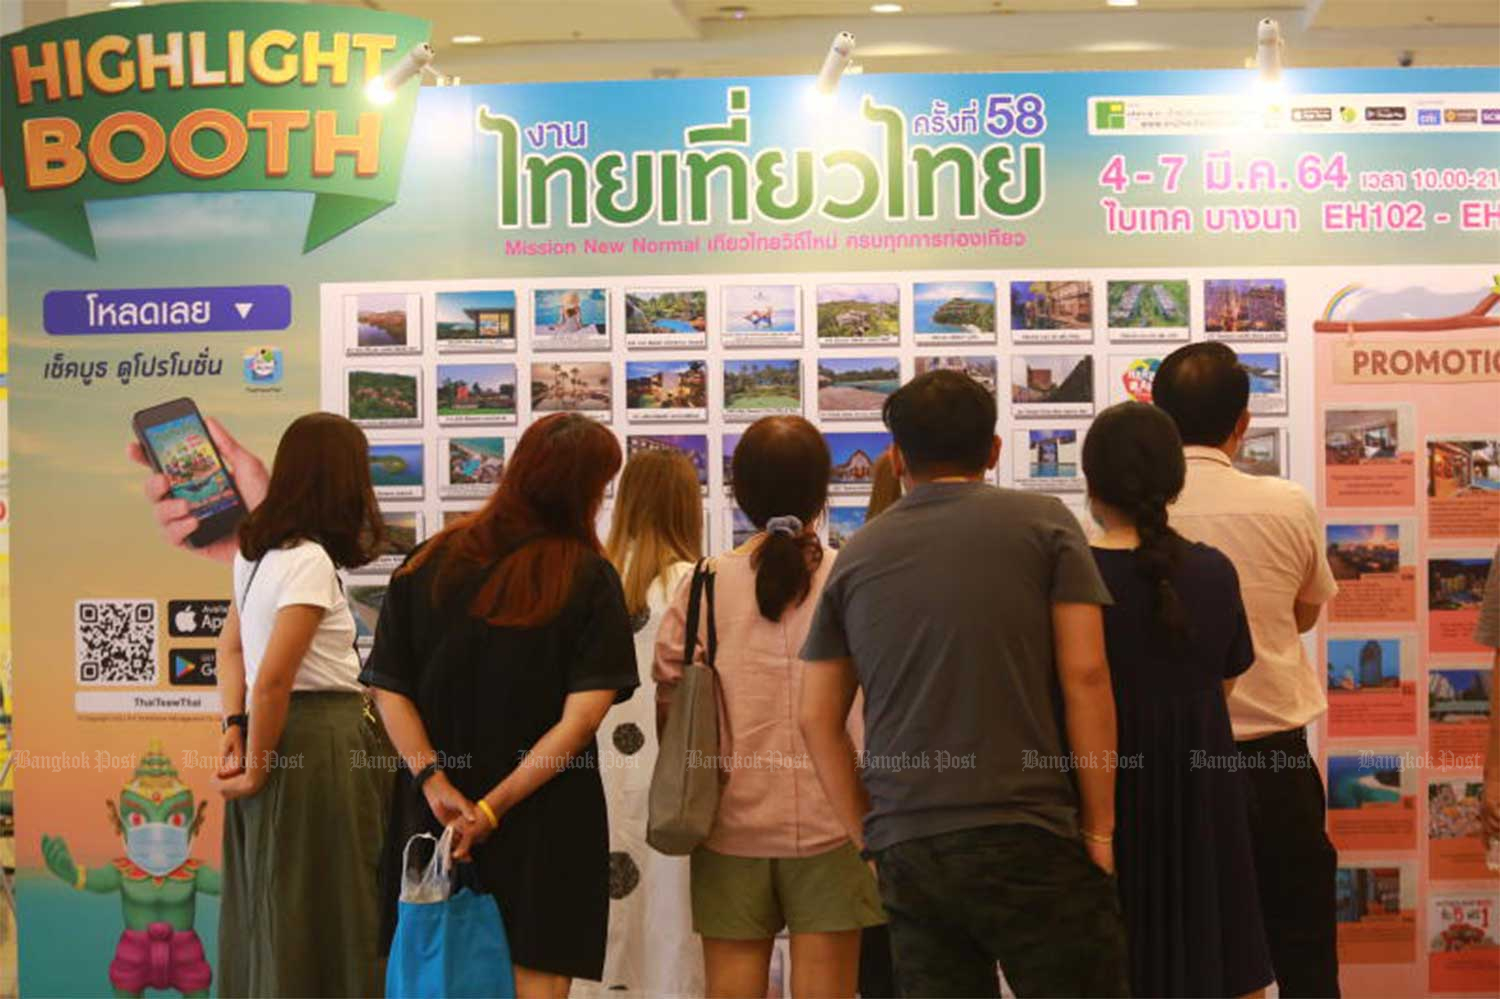 Visitors check out travel promotions at the 58th Thai Tiew Thai travel fair, on March 4 at Bitec Bangna. (File photo)